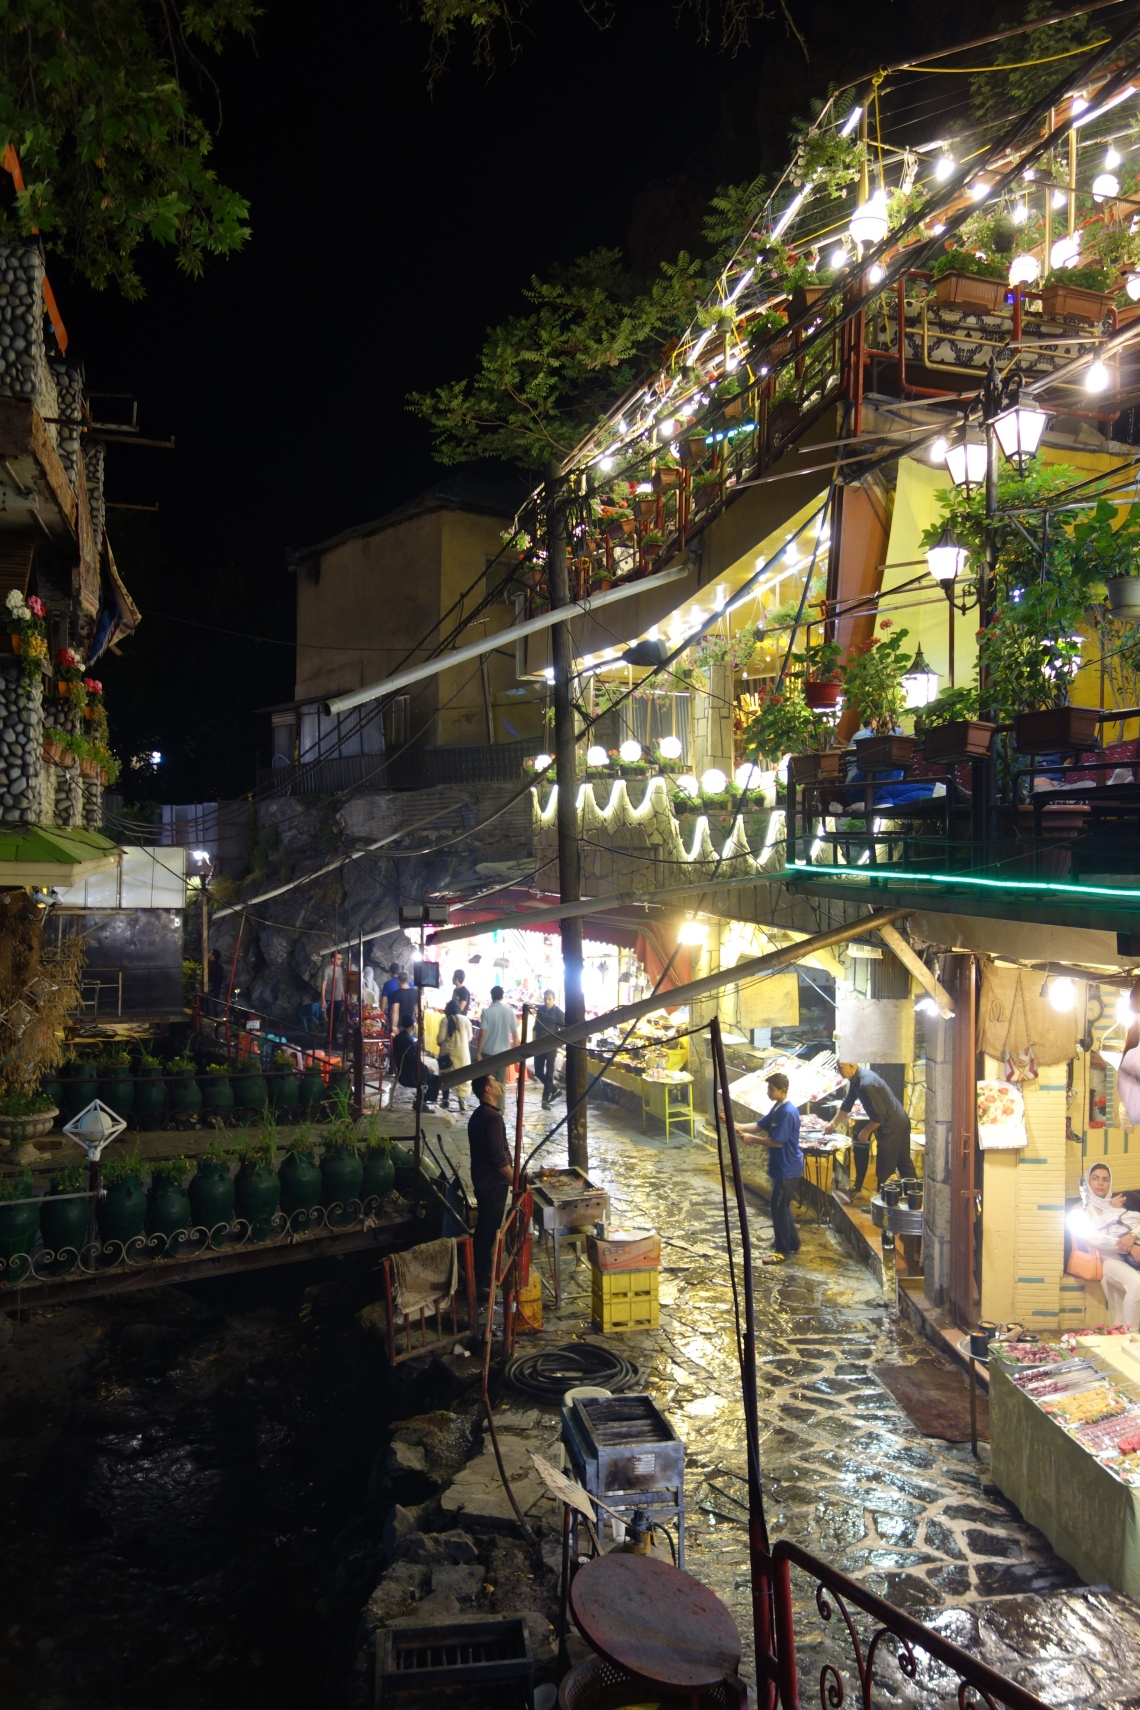 darband night tehran iran travel blog